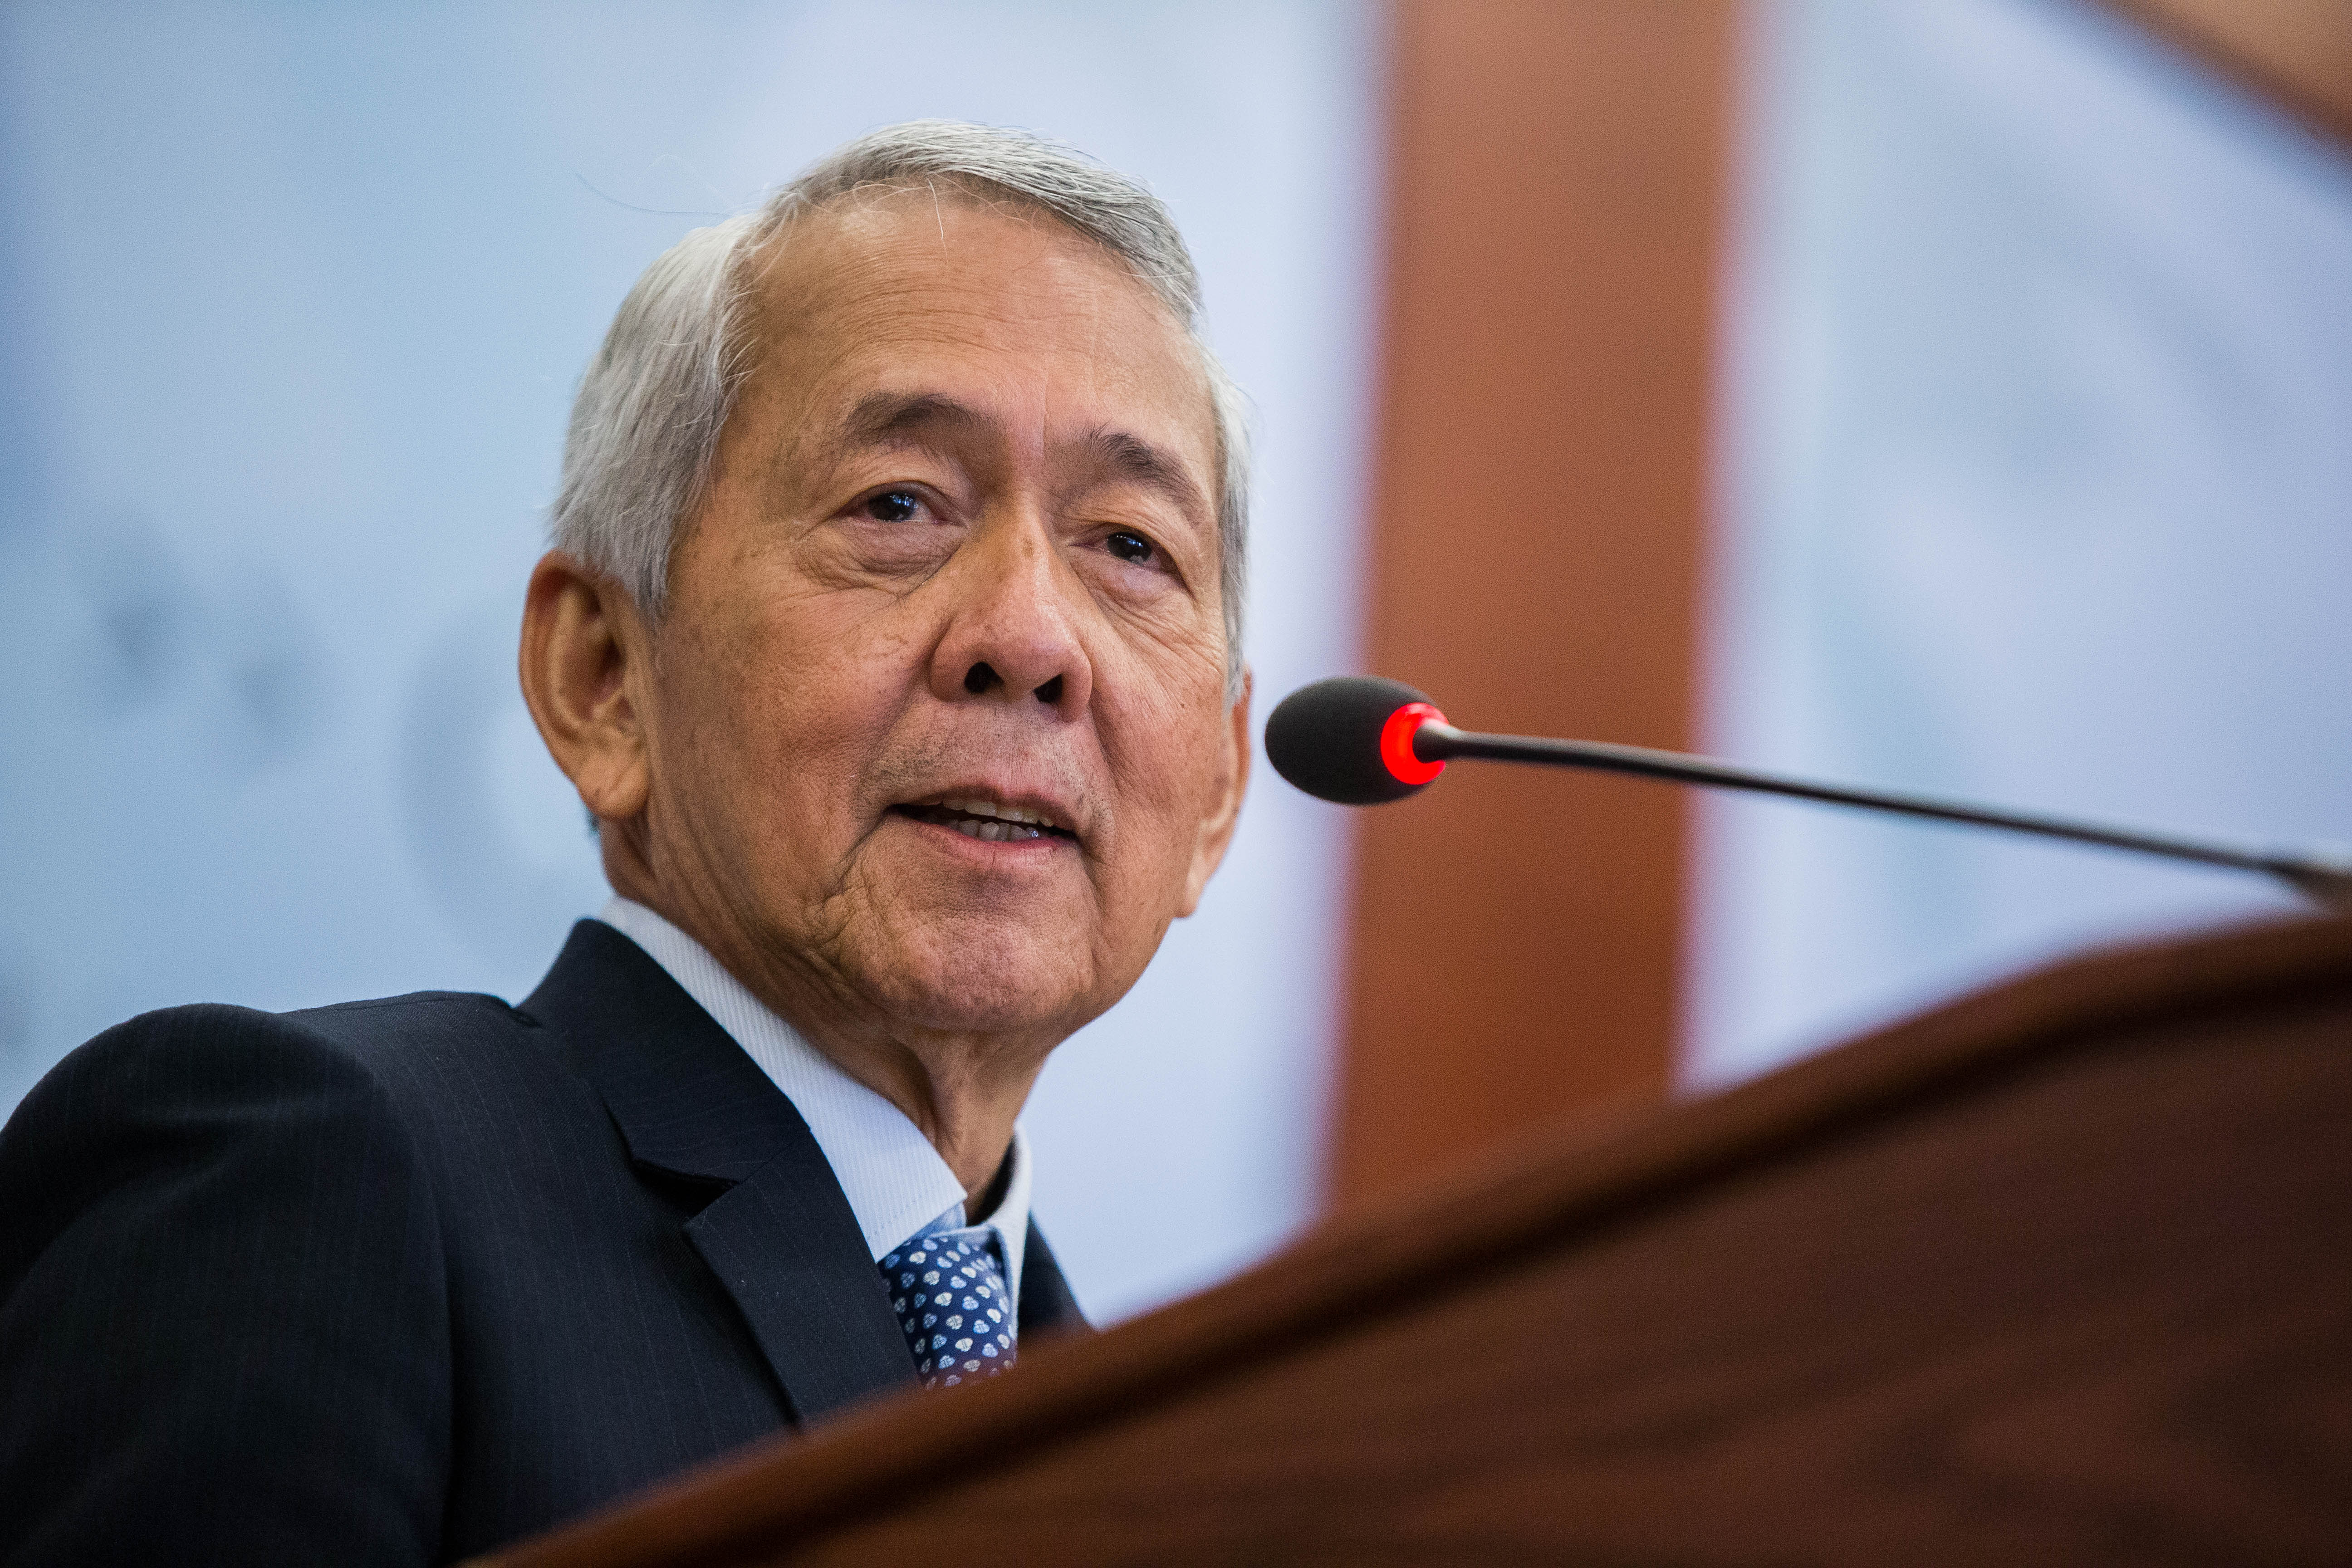 Secretary of Foreign Affairs of the Philippines Perfecto Yasay Jr. speaks during a forum at the Center for Strategic and International Studies headquarters in Washington, D.C.,  Sept. 15, 2016.